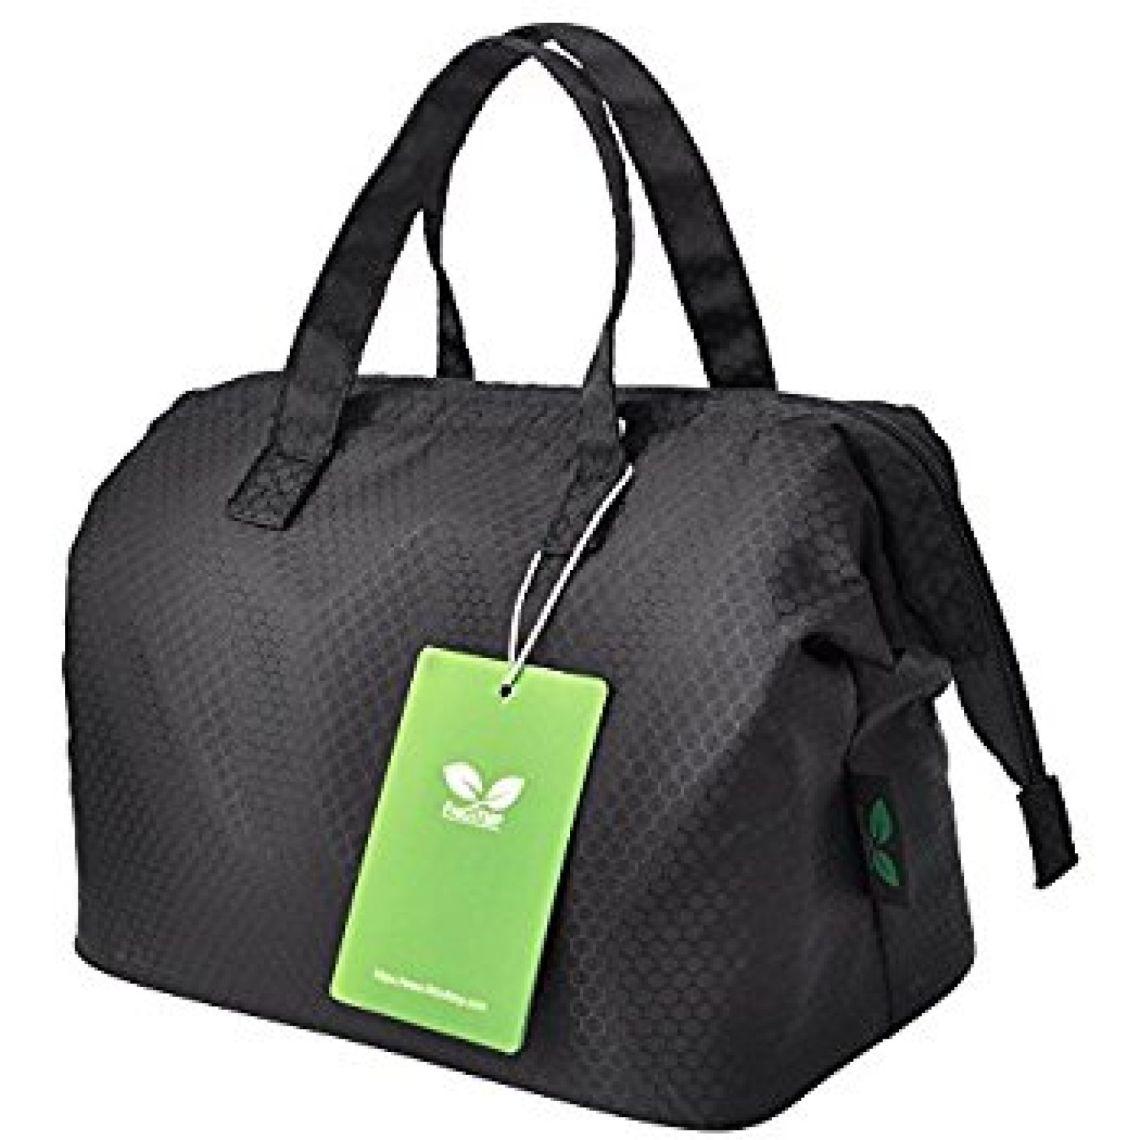 Amazon.com: Insulated Lunch Bag Box, F40C4TMP Tote For Women Men Kids Adult Reusable Lightweight Lunch Tote (Black N8): Kitchen & Dining